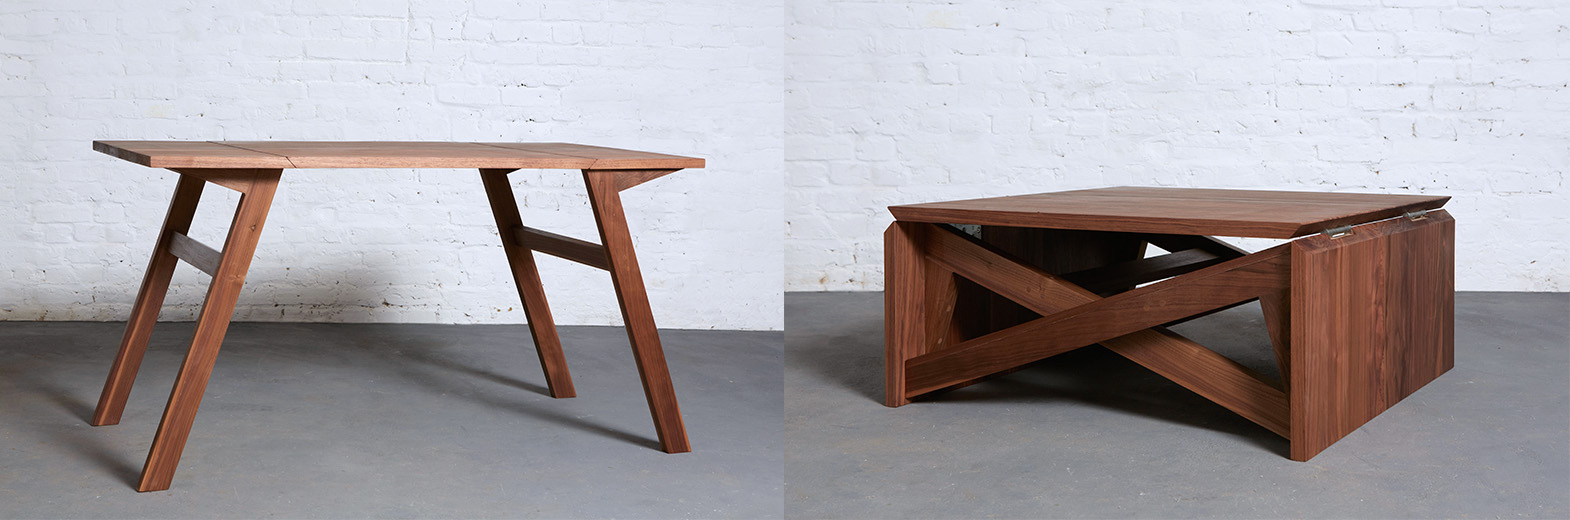 PRODUCT DETAILS - MK1 Transforming Coffee Table - Duffy London